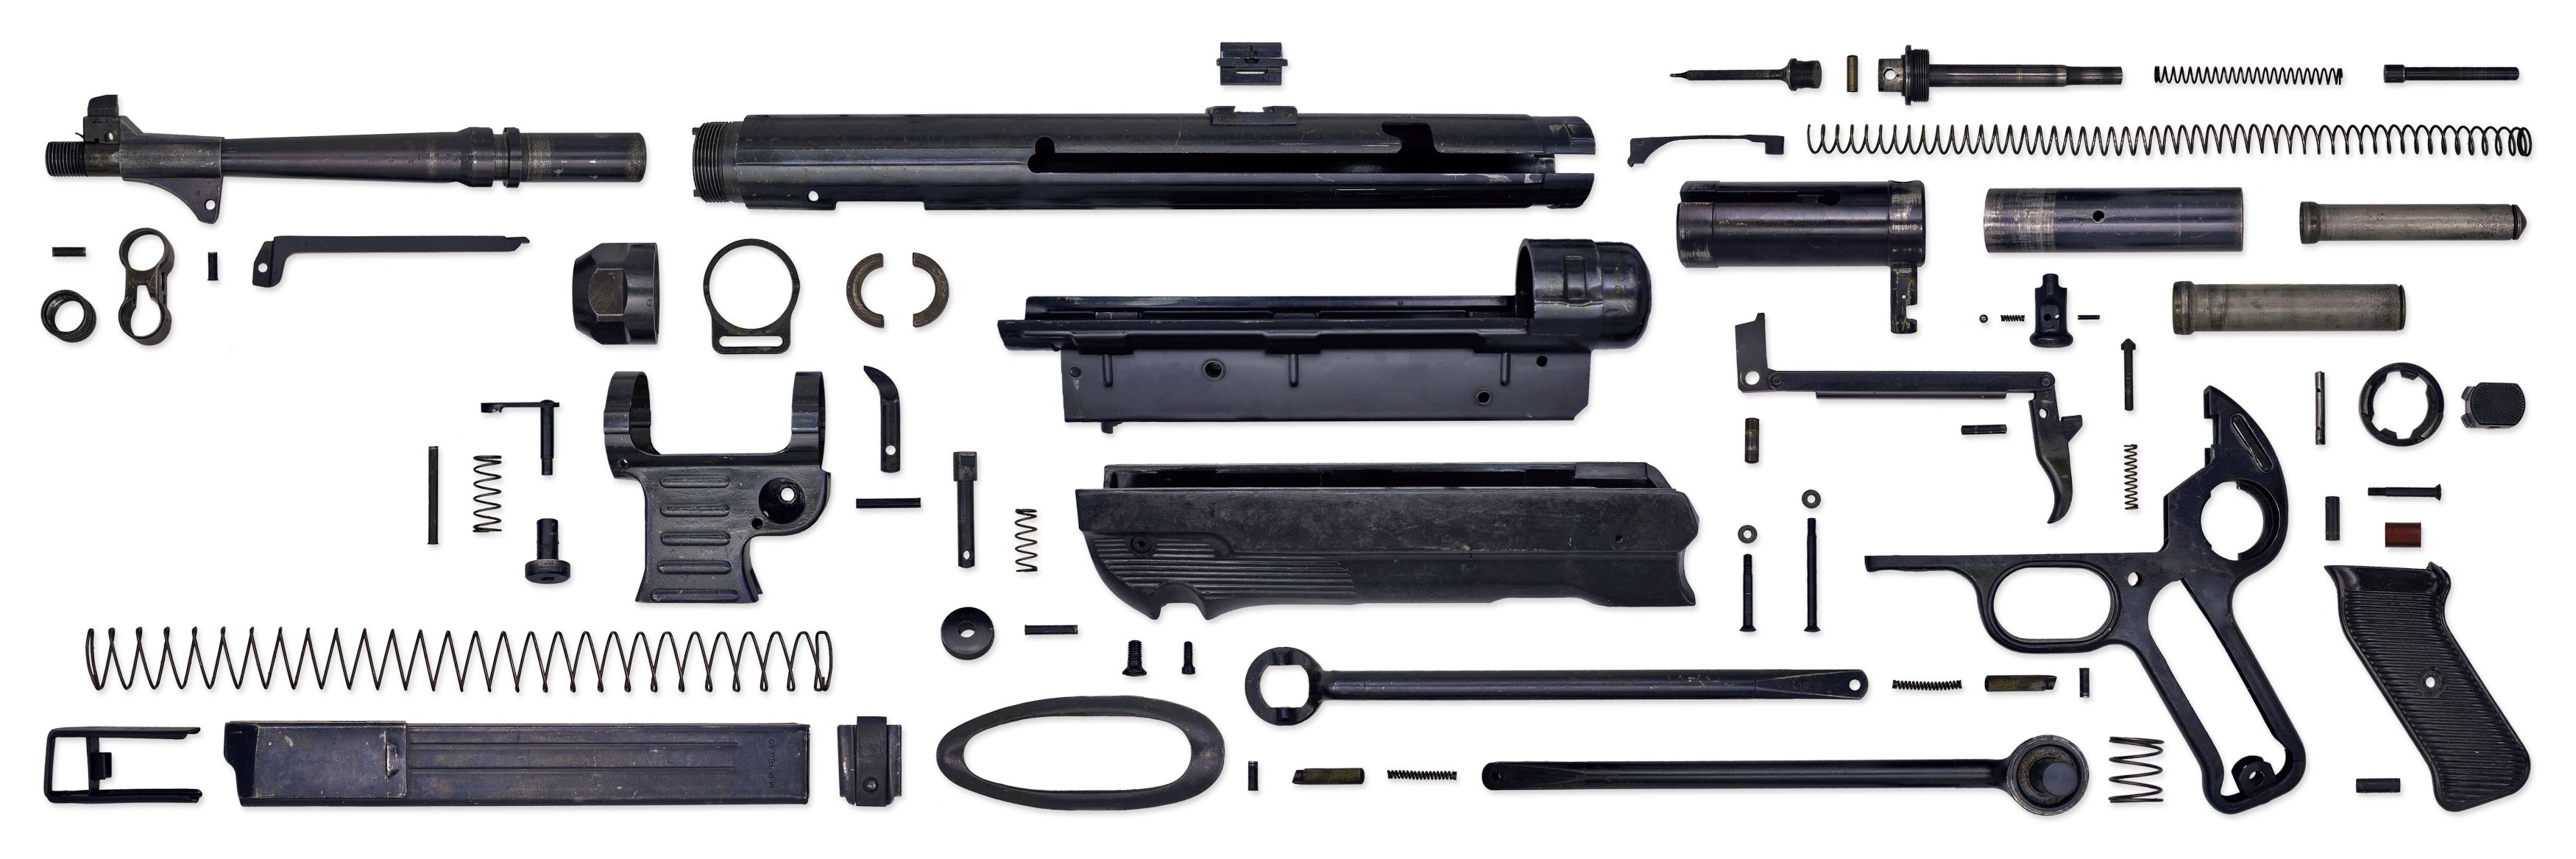 mp40 mp40 parts in detail [ 3500 x 1167 Pixel ]